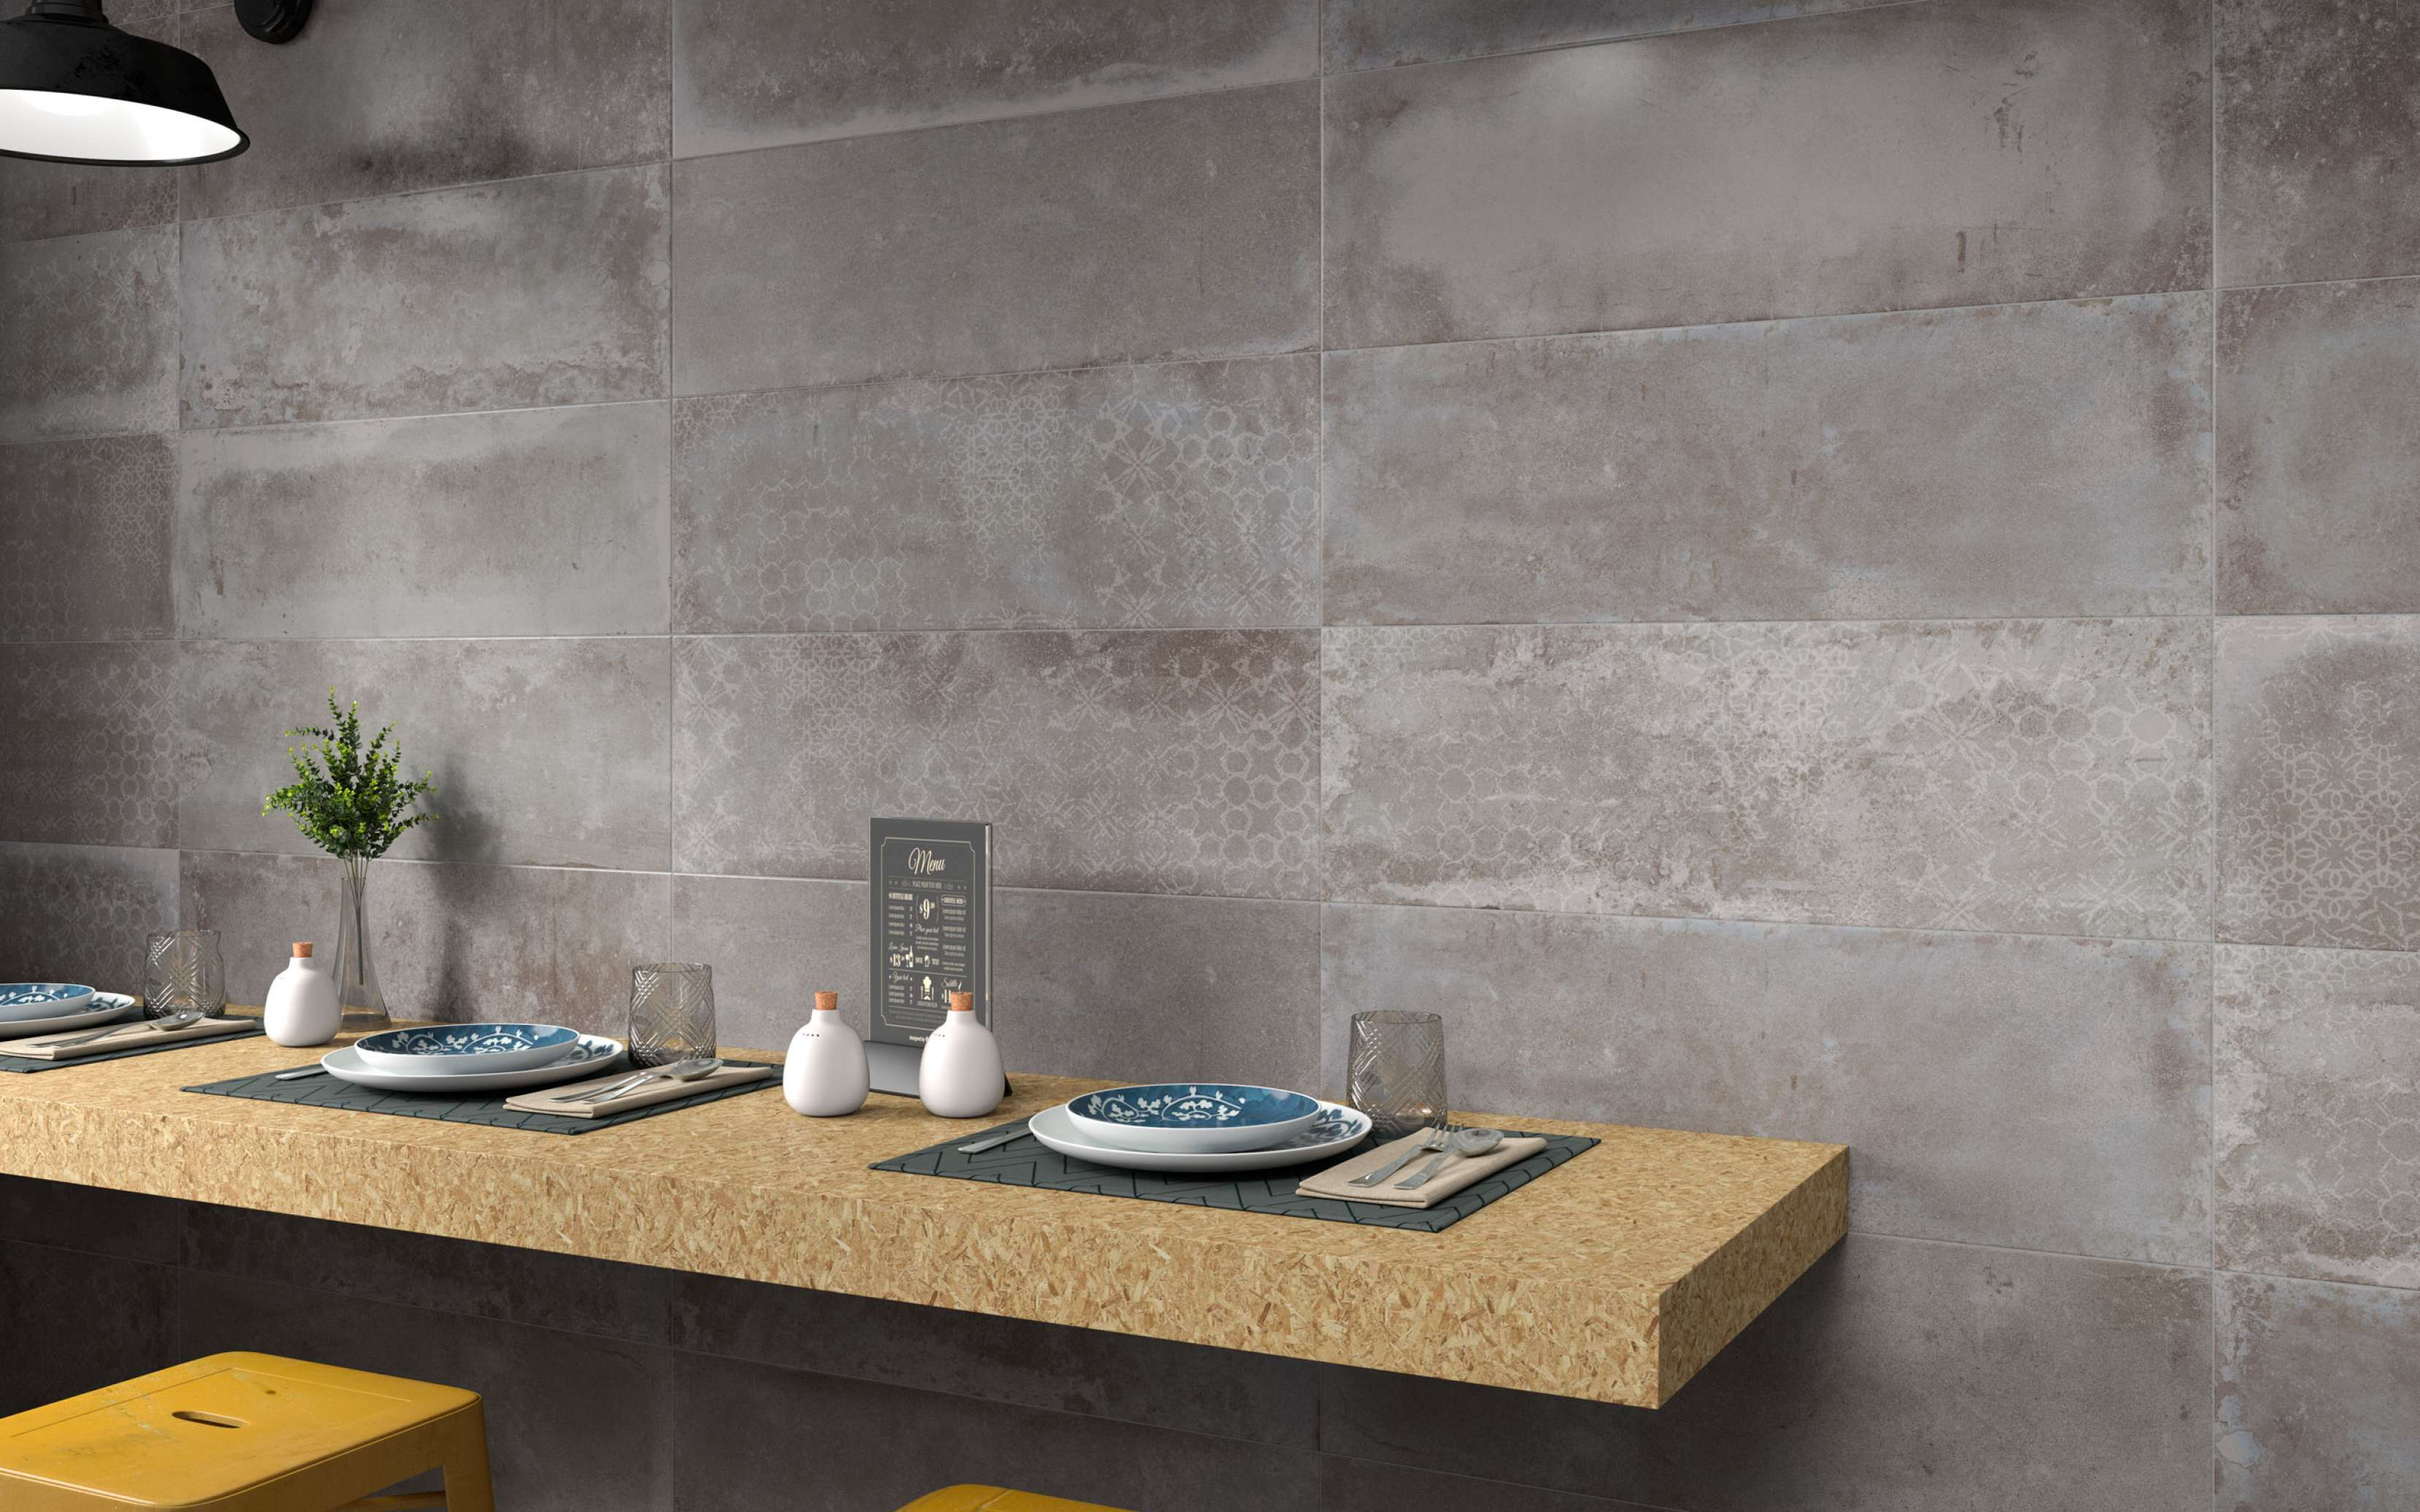 New coordenated wall tiles and new colour